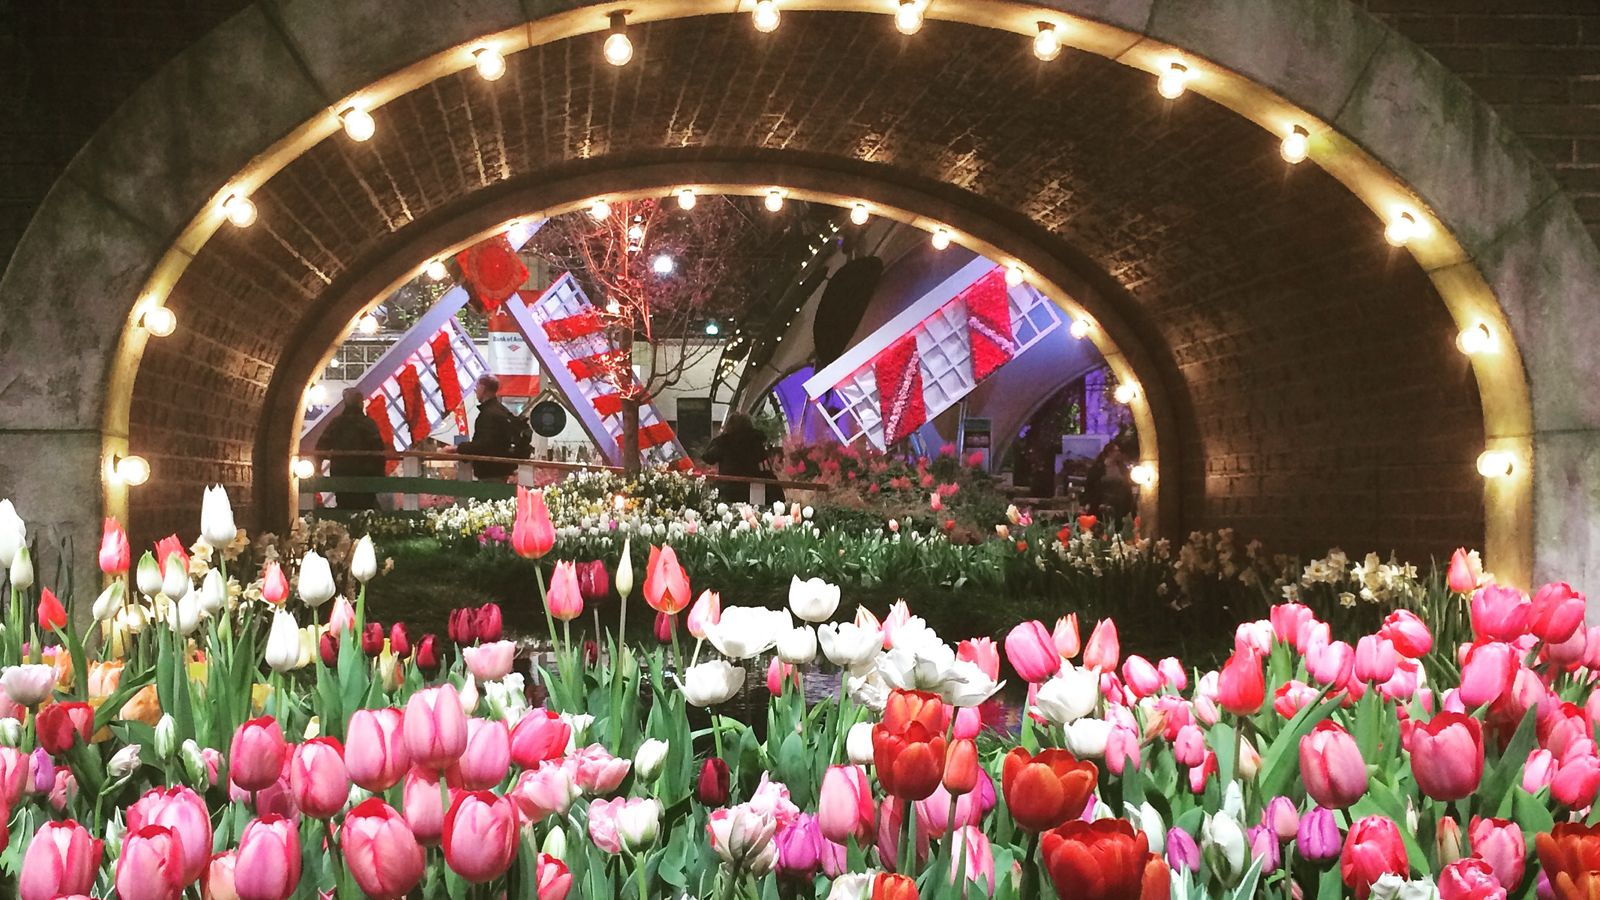 Philadelphia flower show what happens to the flowers - Chicago flower and garden show 2017 ...